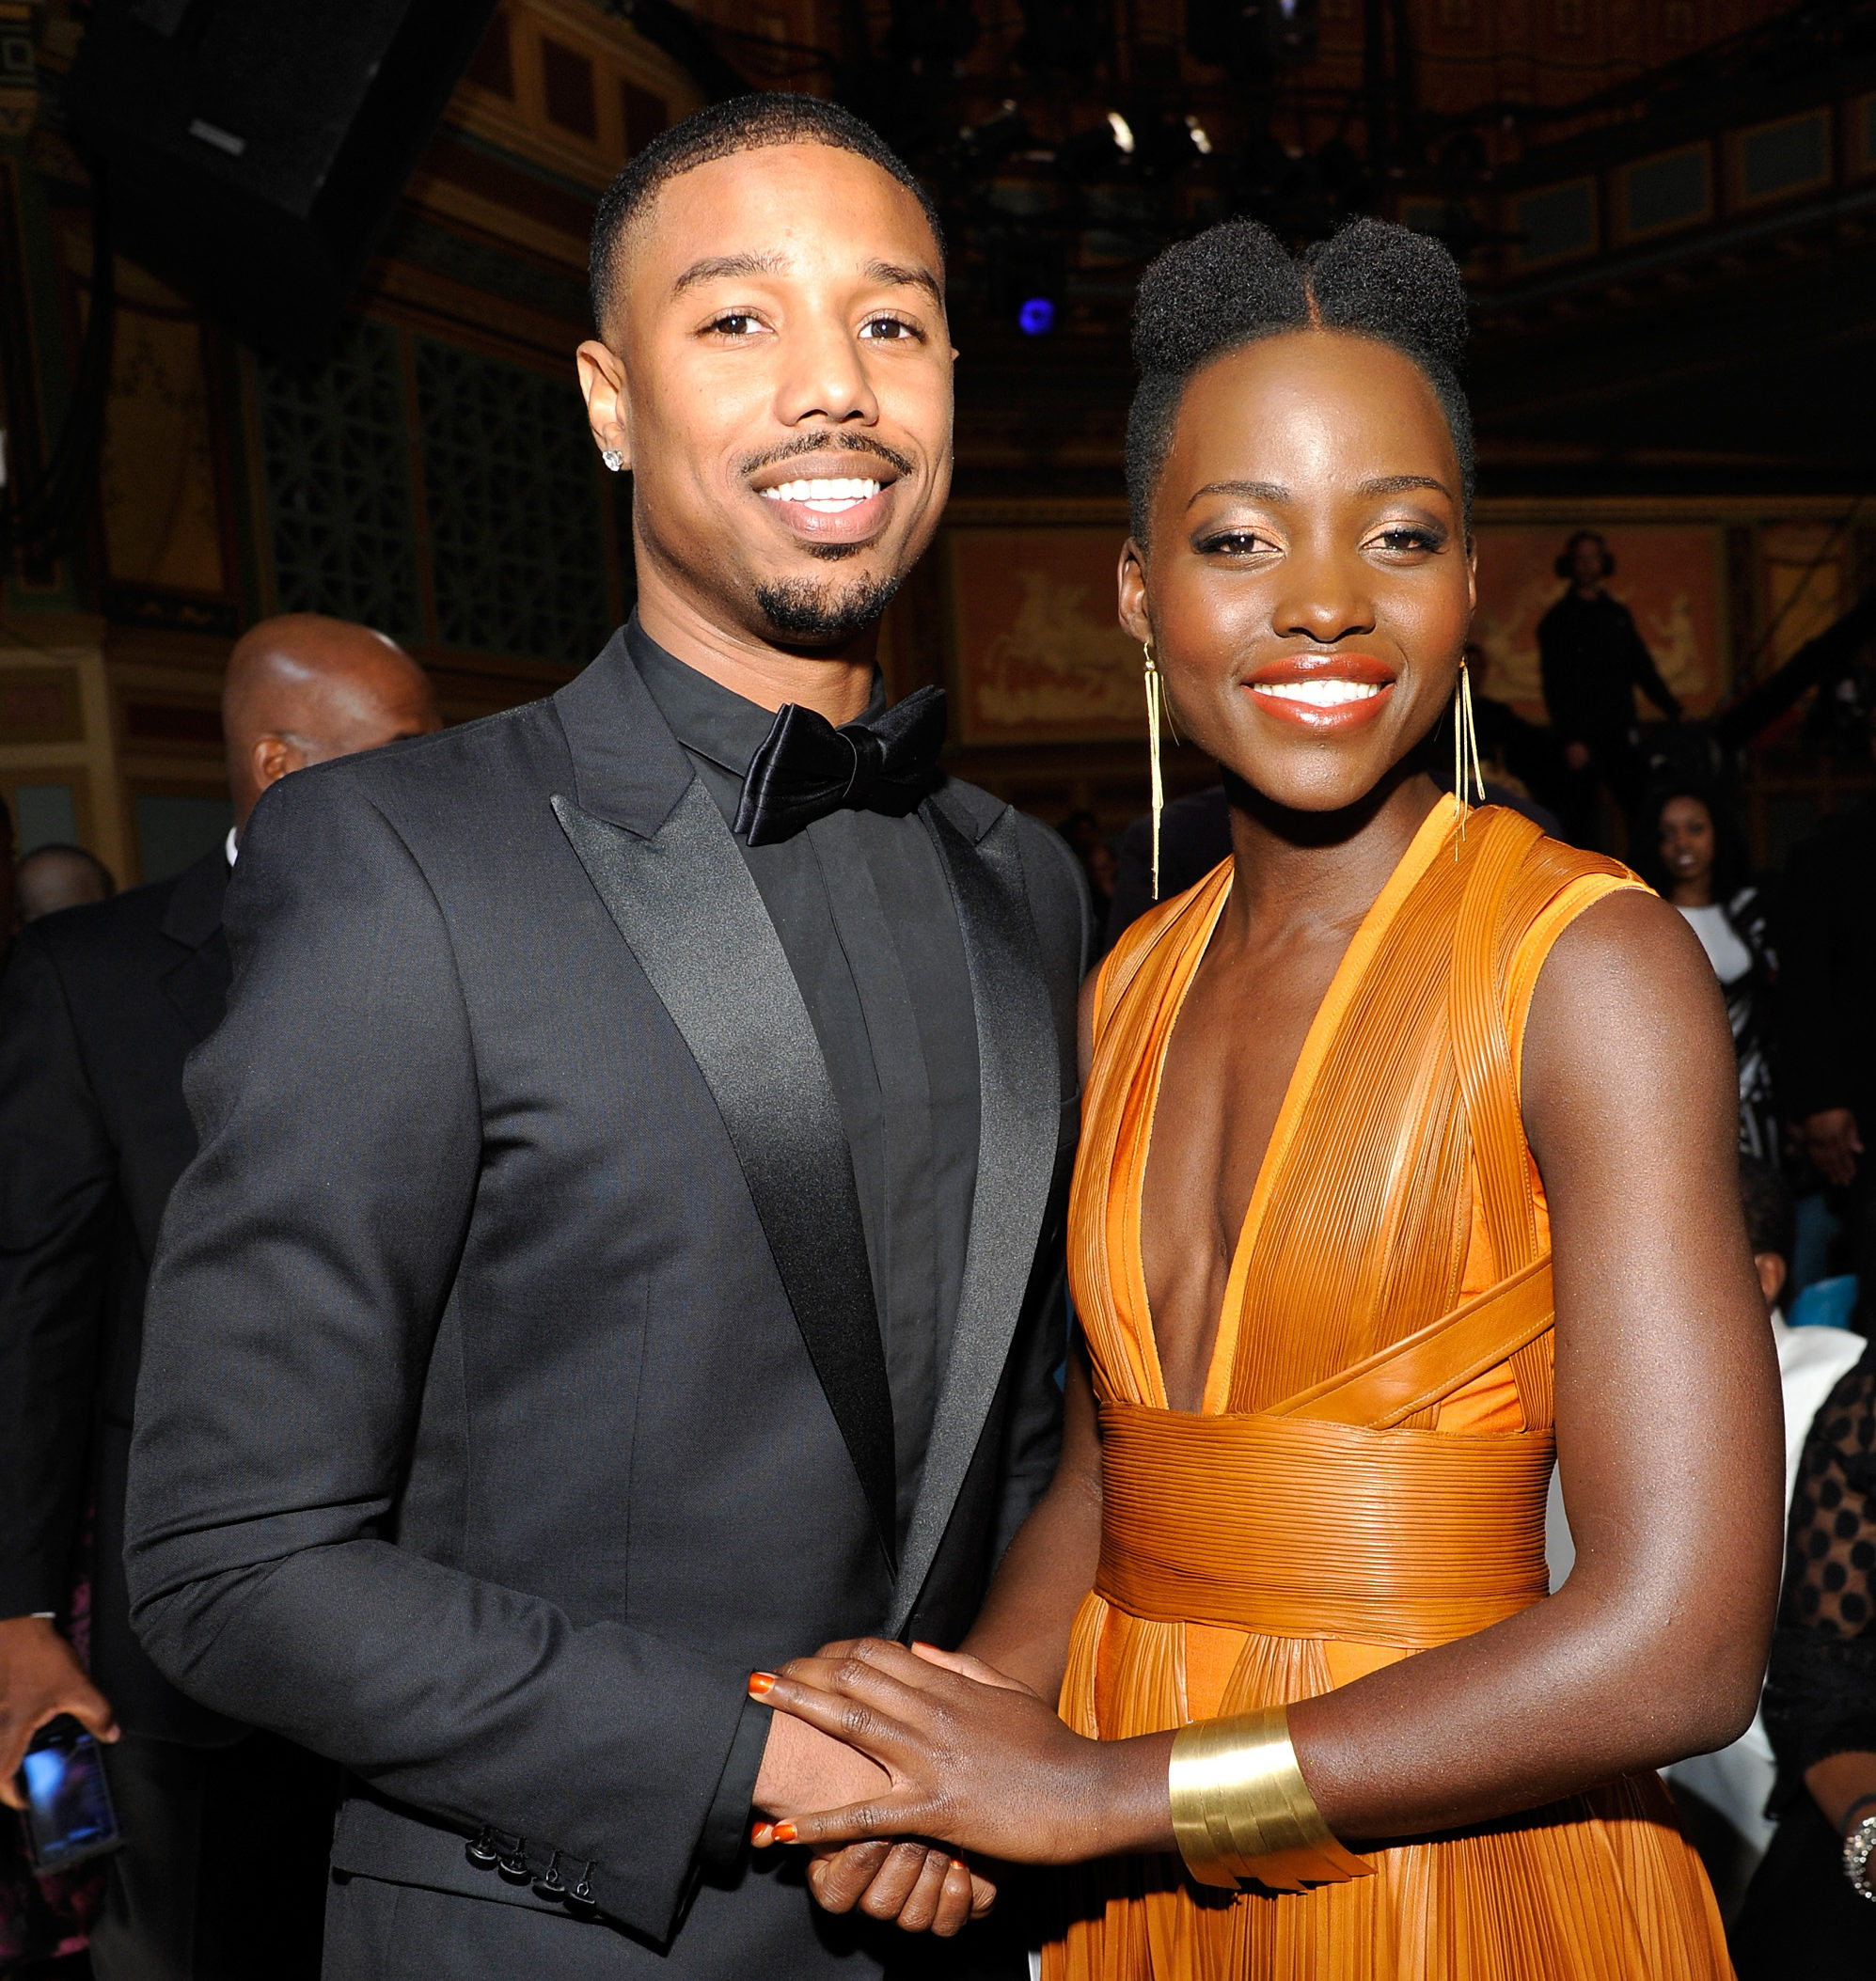 Michael B. Jordan with co-star Lupita Nyong'o